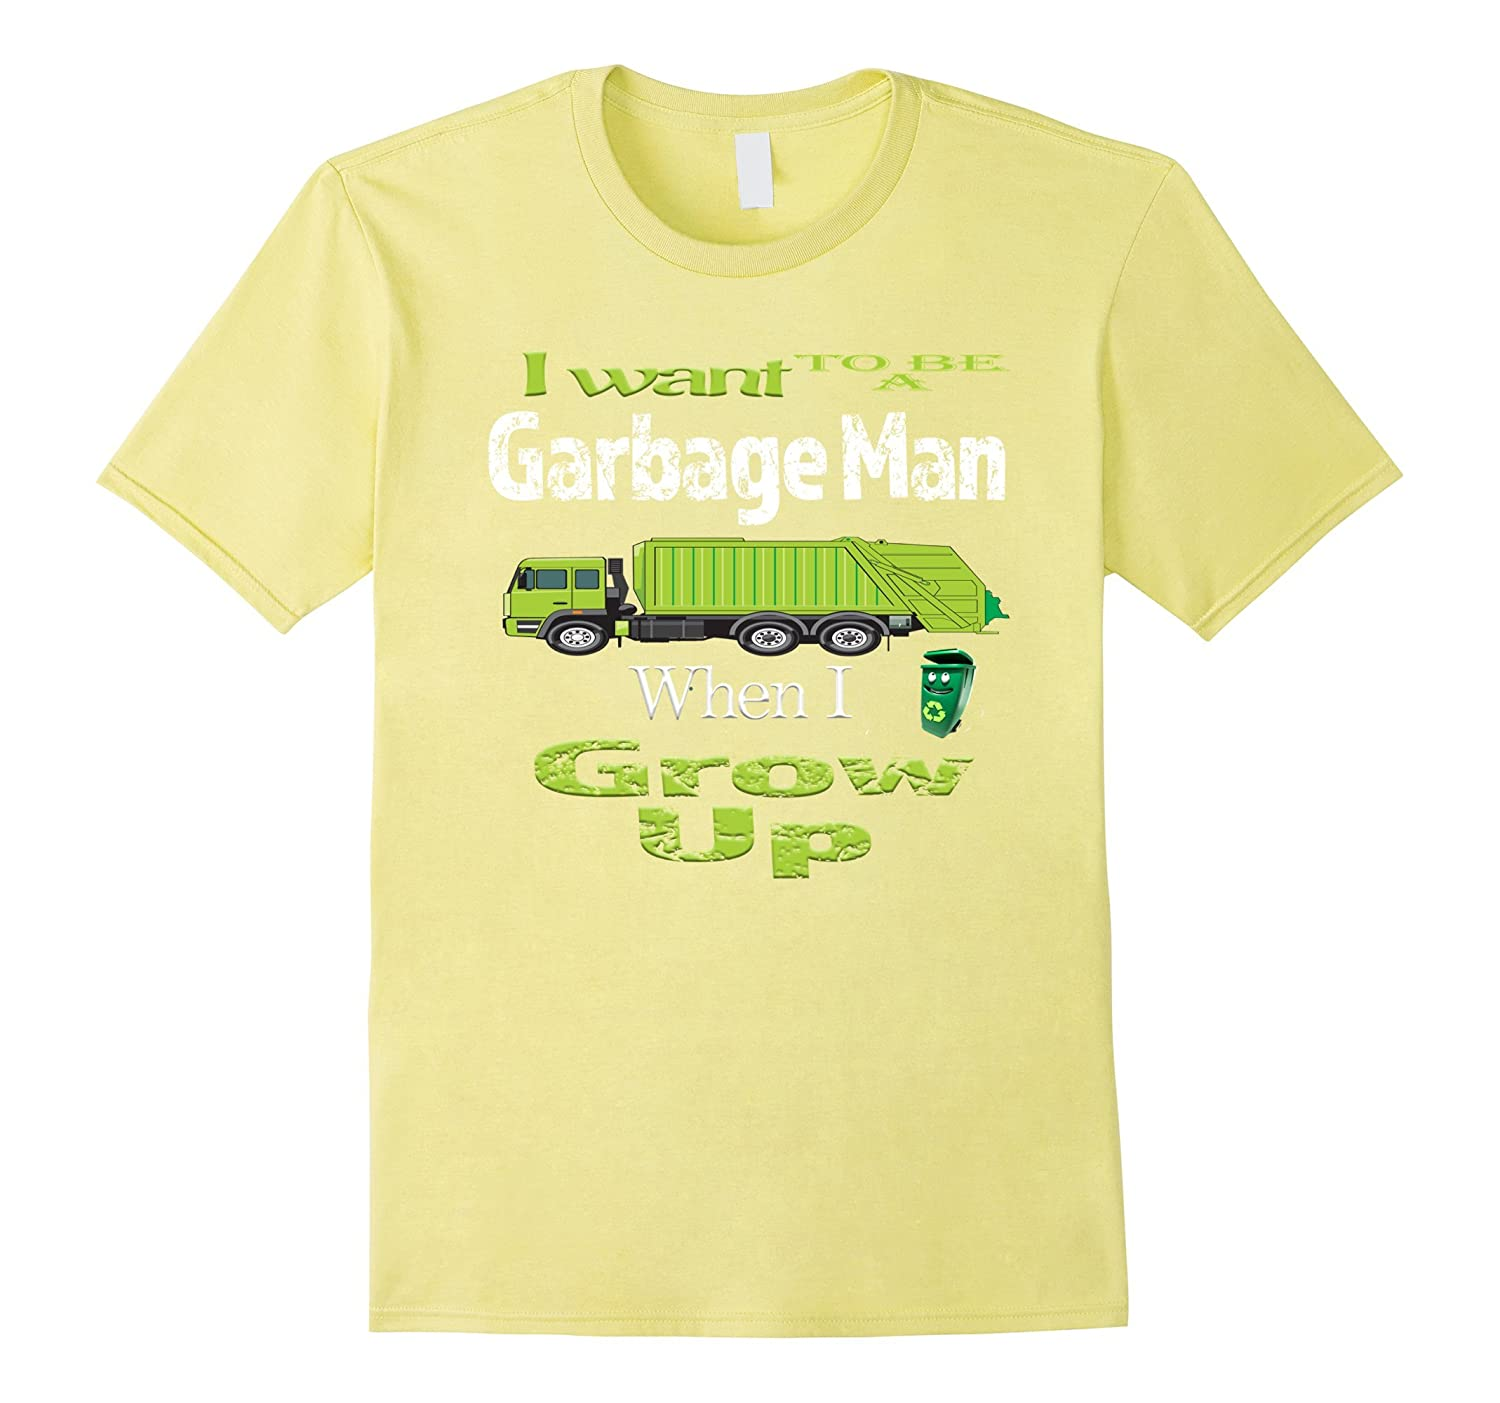 I Want to be a Garbage Man Boys Girls Kids Truck Trash Shirt-CD